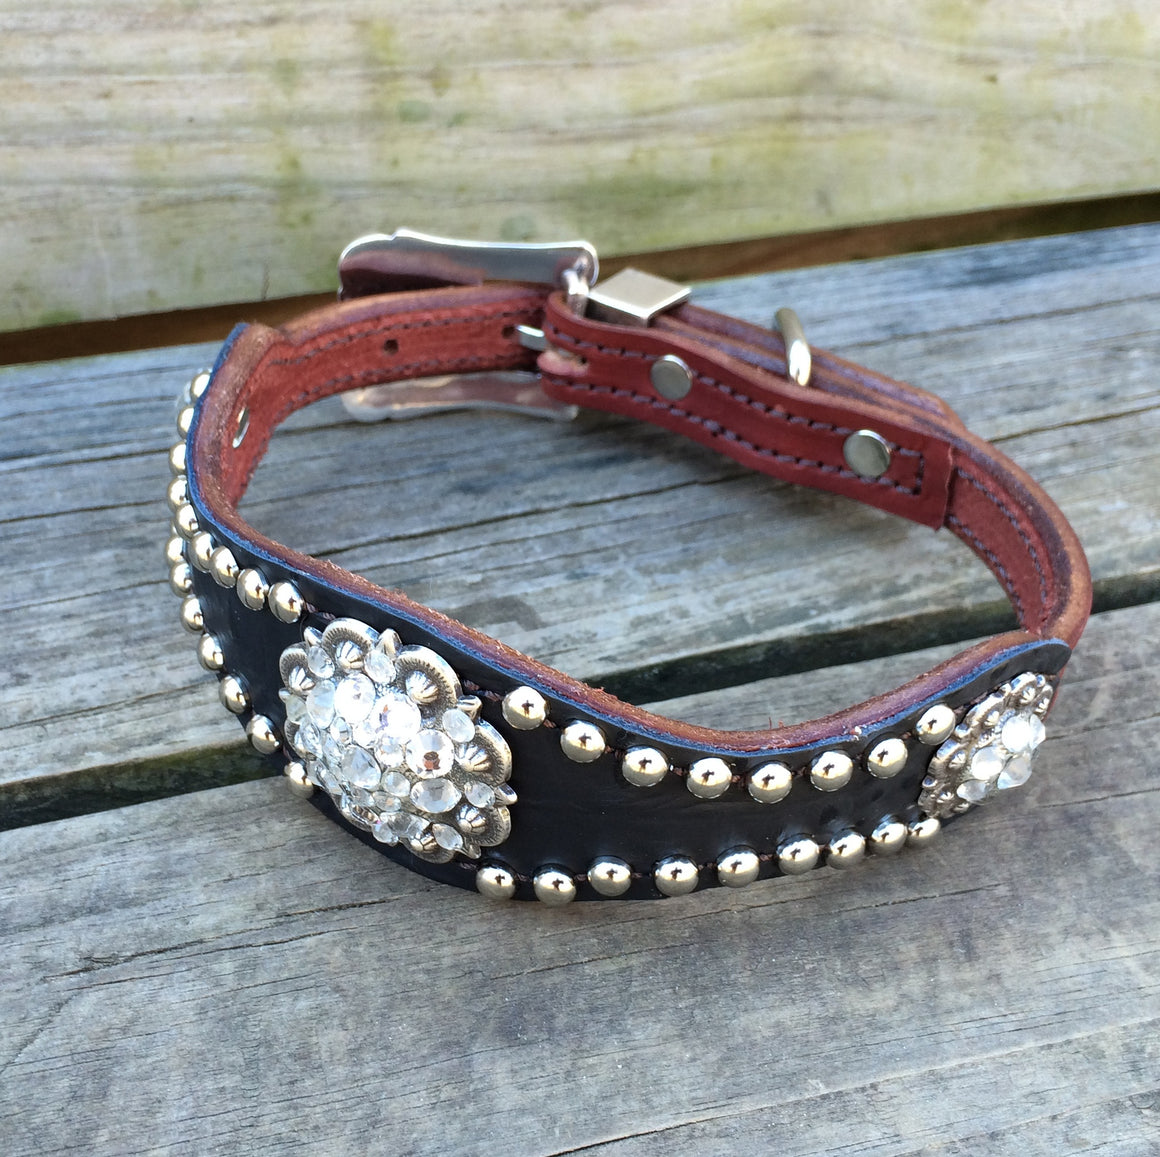 Black Gator Scallop Dog Collar w/ Crystal Clear Rhinostone Conchos & Buckle